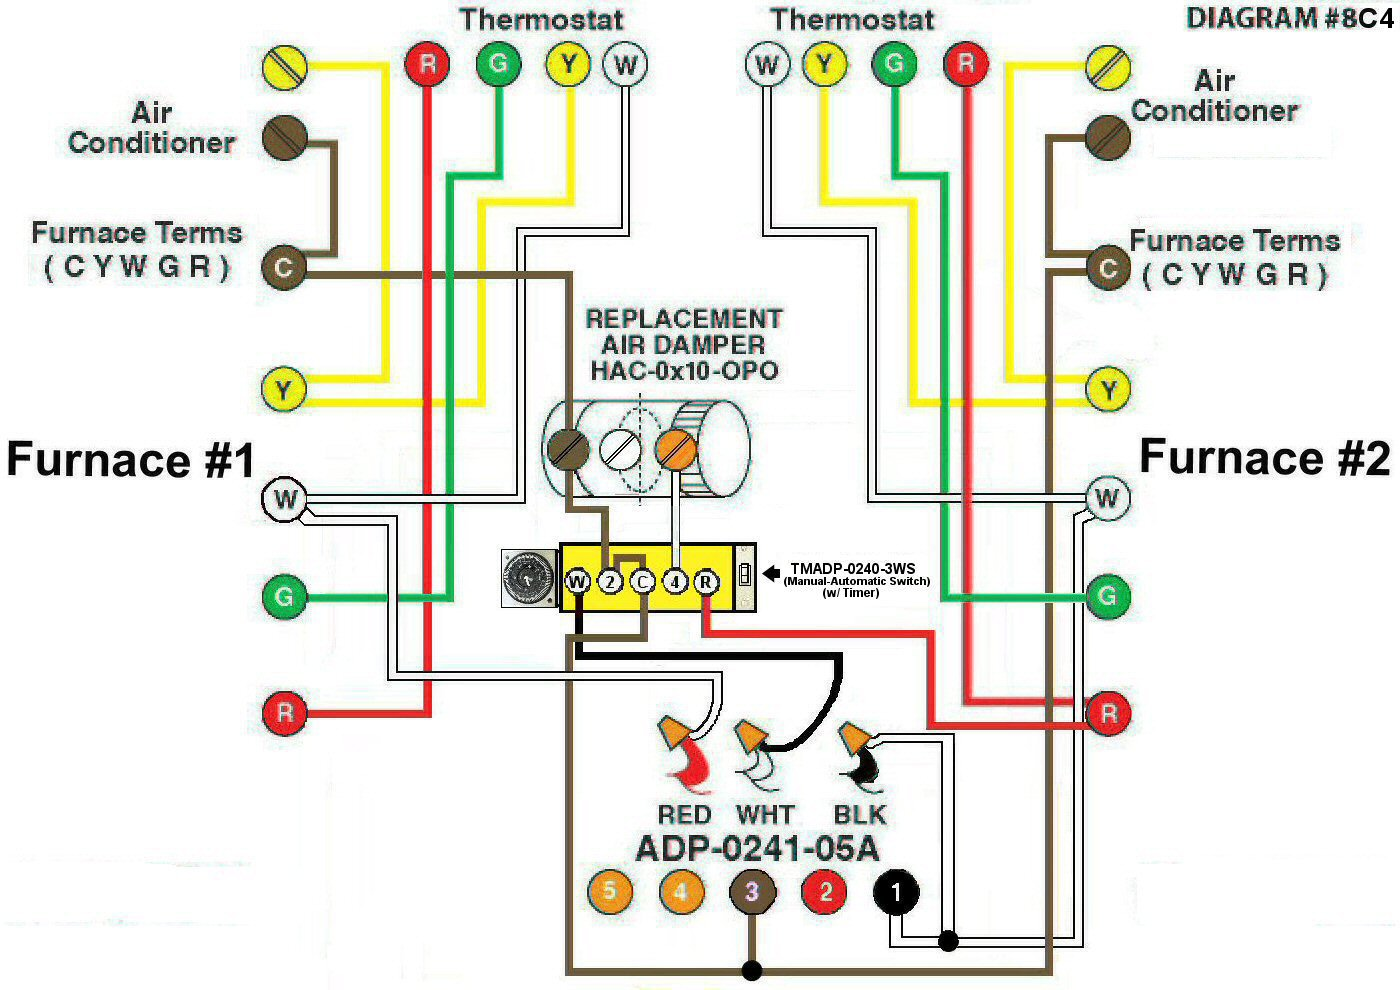 diagram 8c4?resize=665%2C470 rheem furnace wiring schematic wiring diagram  at bayanpartner.co